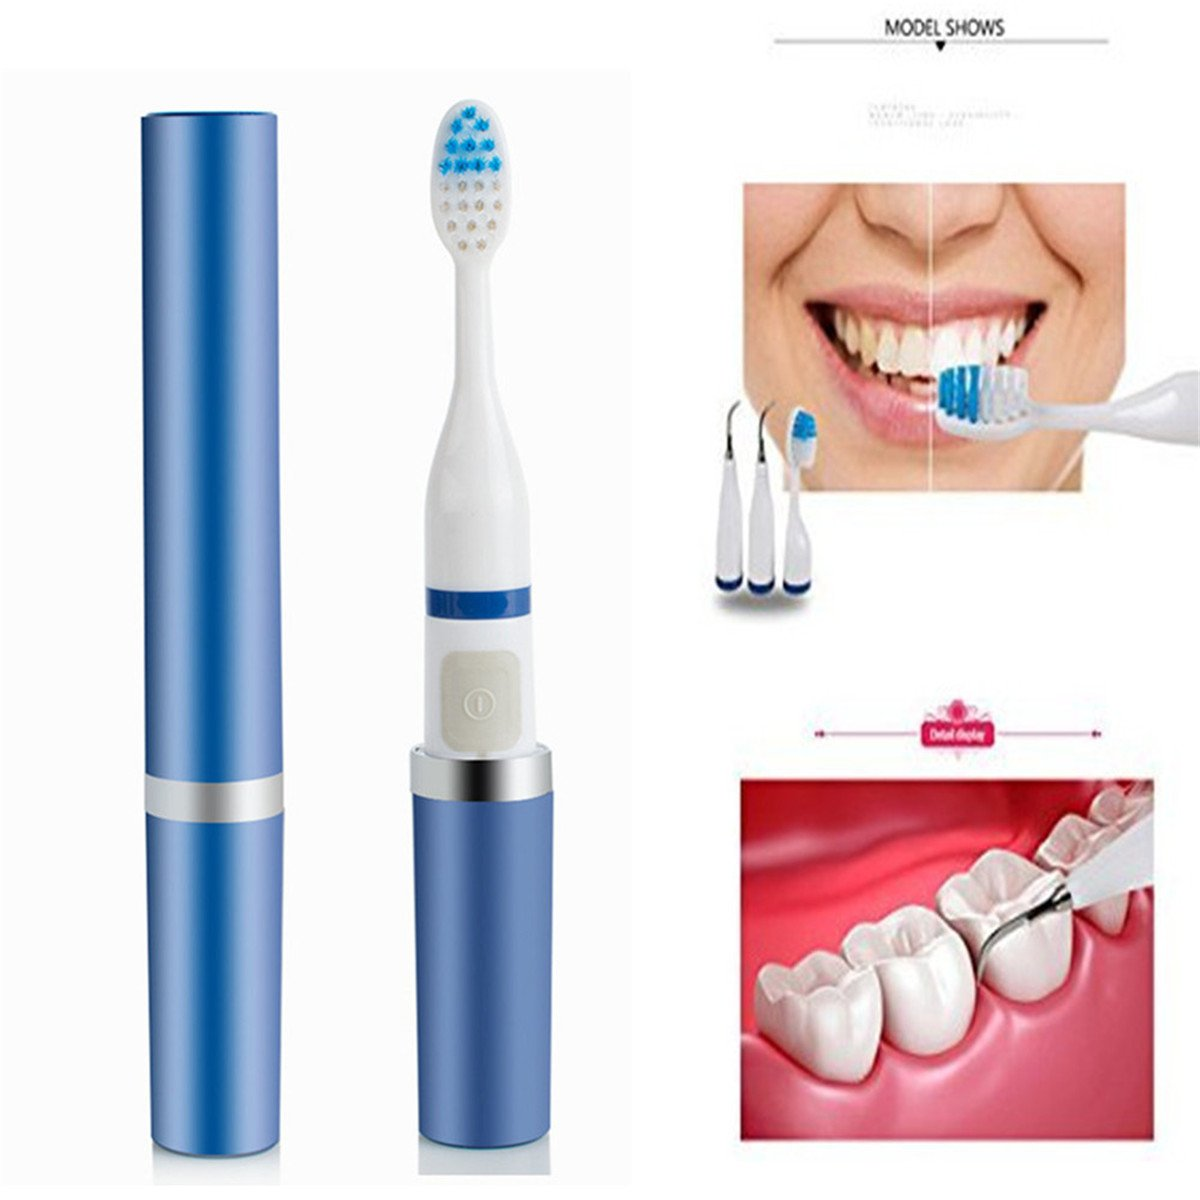 Teeth Polisher Teeth Cleaner,Fencia Teeth Tartar Plaque Stain Remover Dental Calculus Cleaner High Frequency Vibration Sonic Toothbrush 2 in 1 by Fencia (Image #3)